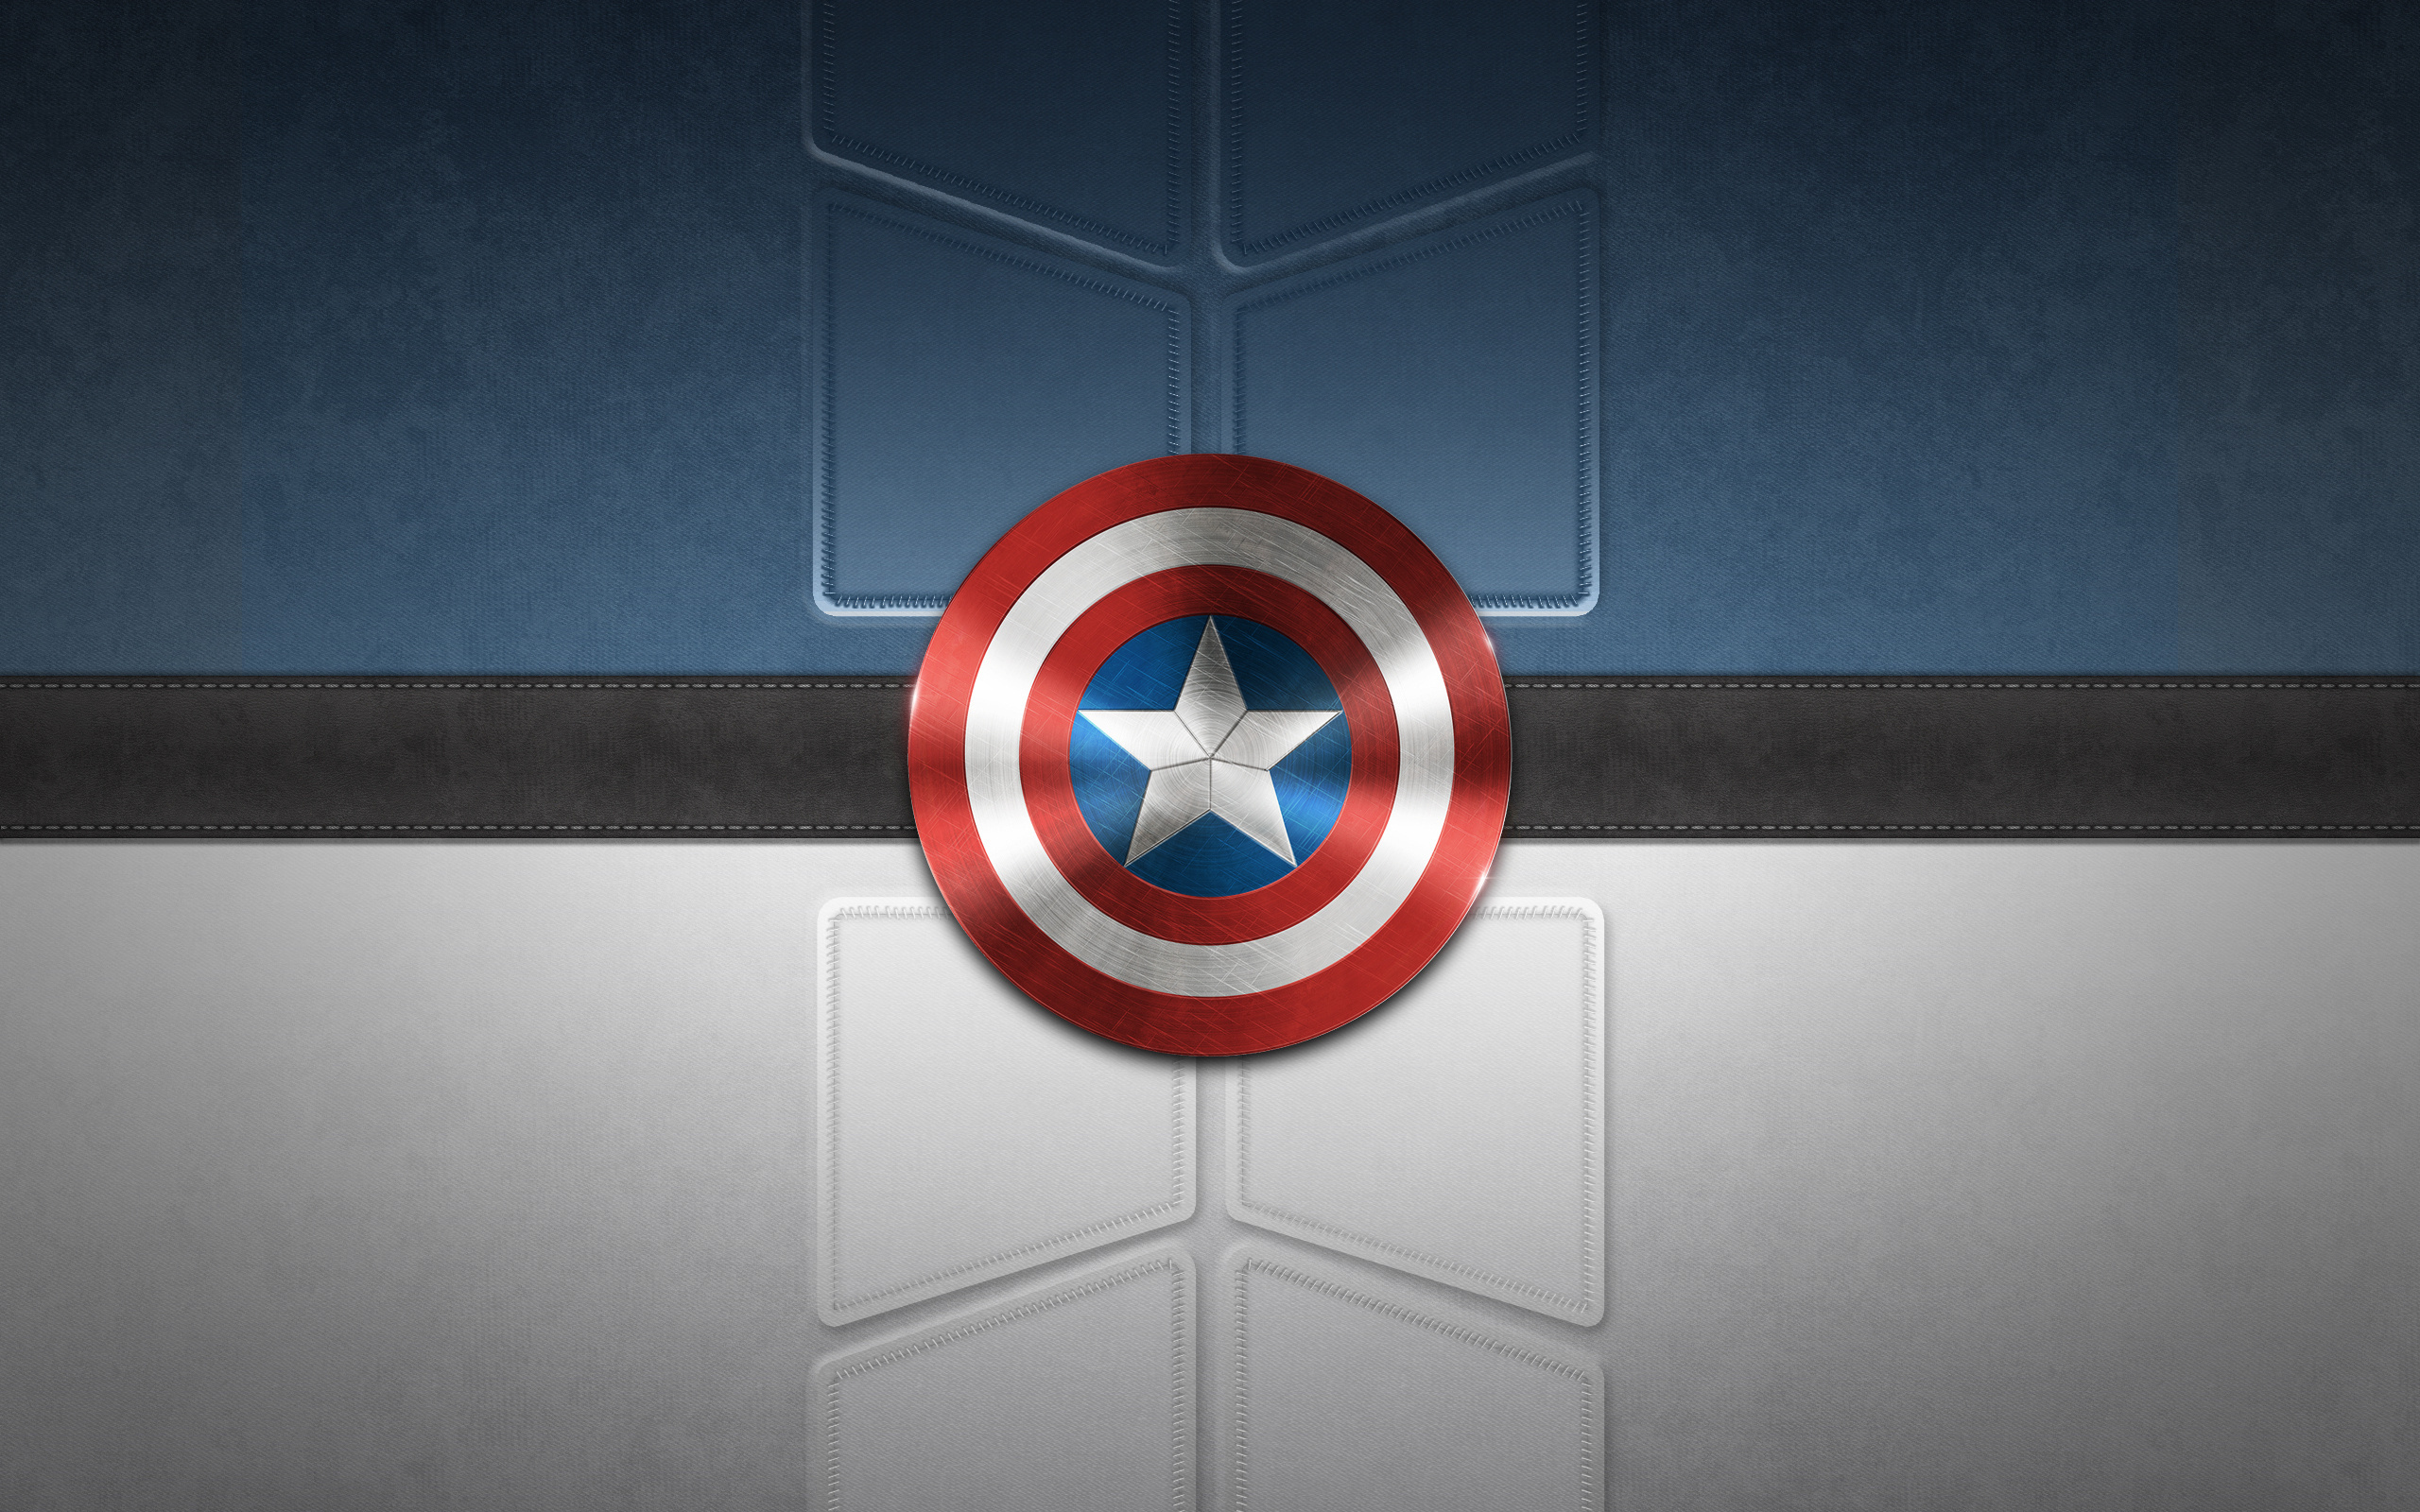 Hd wallpaper of captain america - Comics Captain America Wallpaper